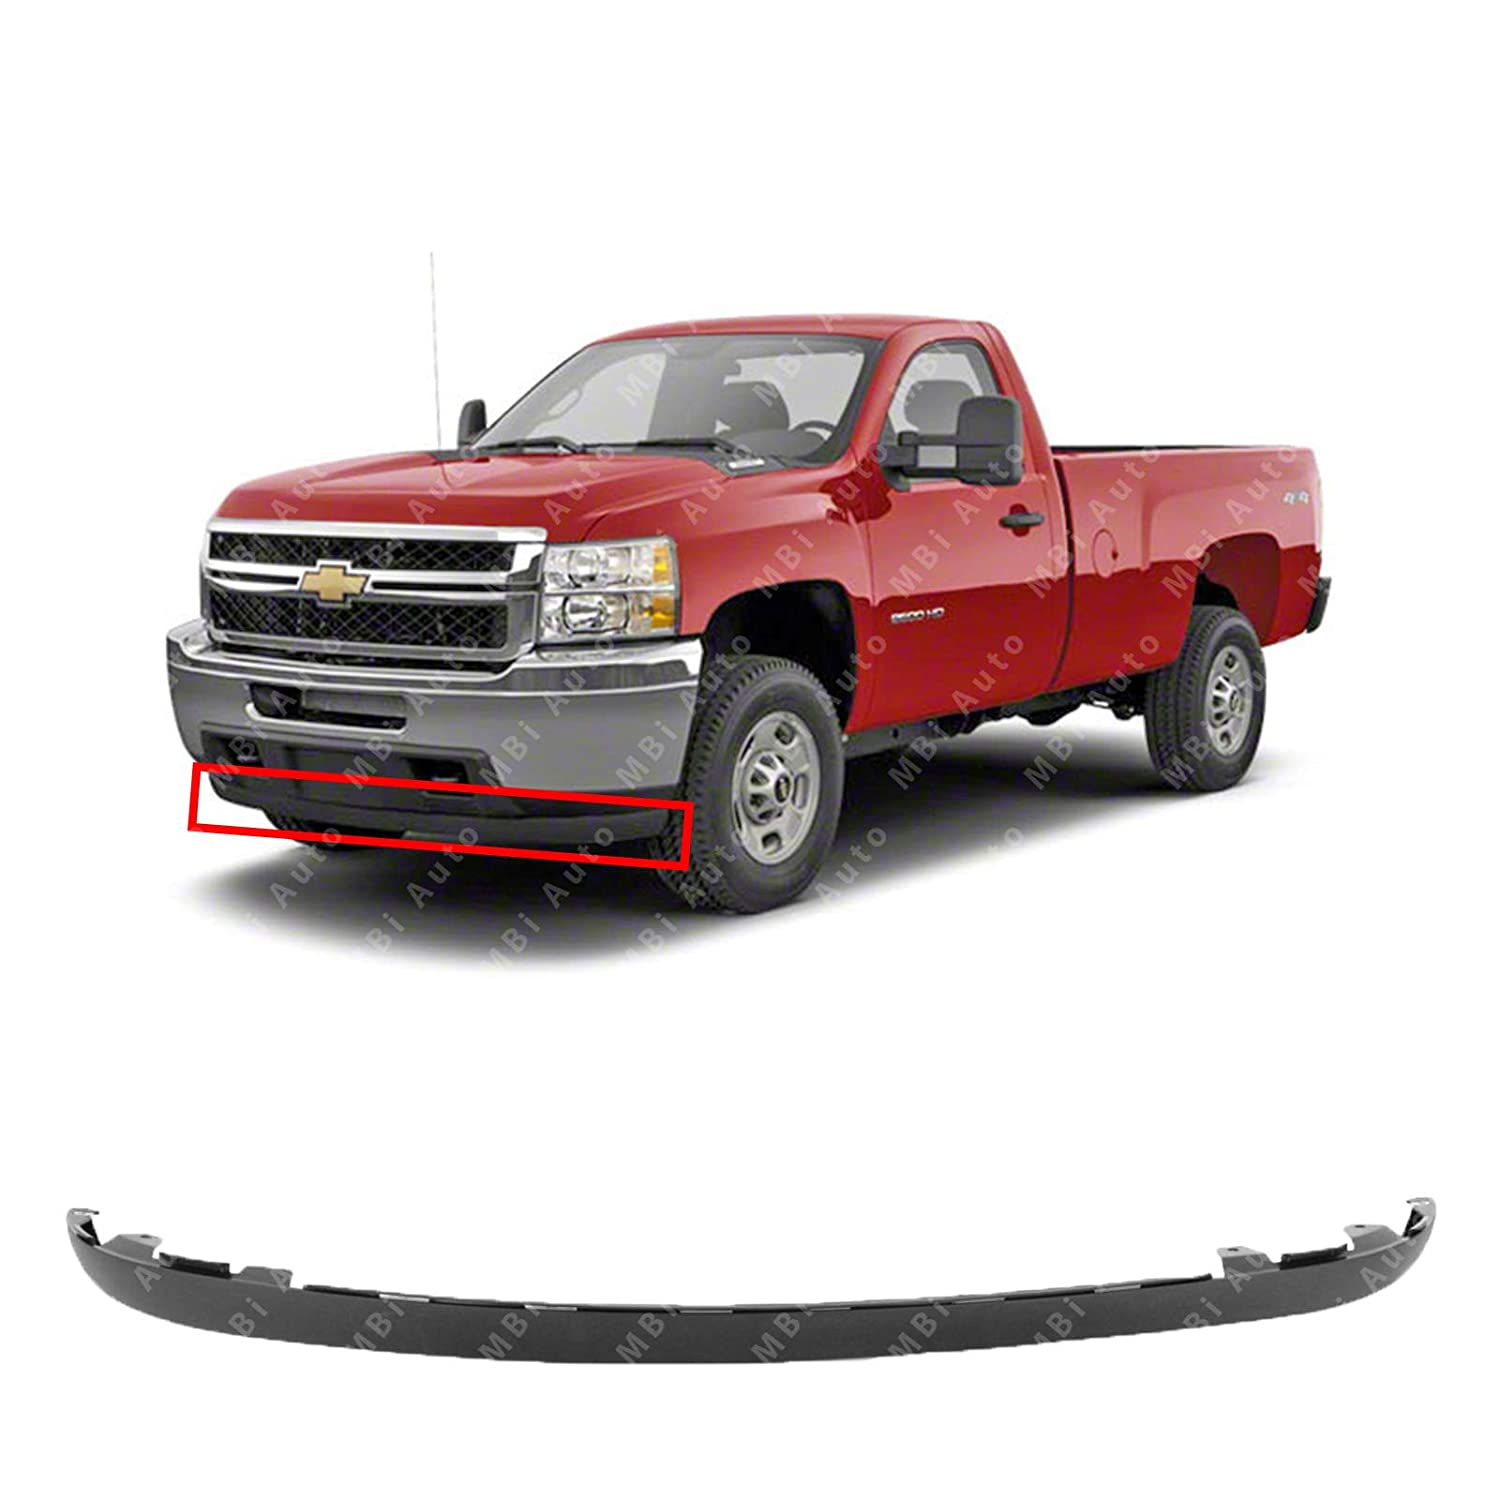 MBI AUTO - Textured, Front Lower Valance Air Deflector for 2011 2012 2013 Chevy Silverado 2500 3500 11 12 13, GM1095195